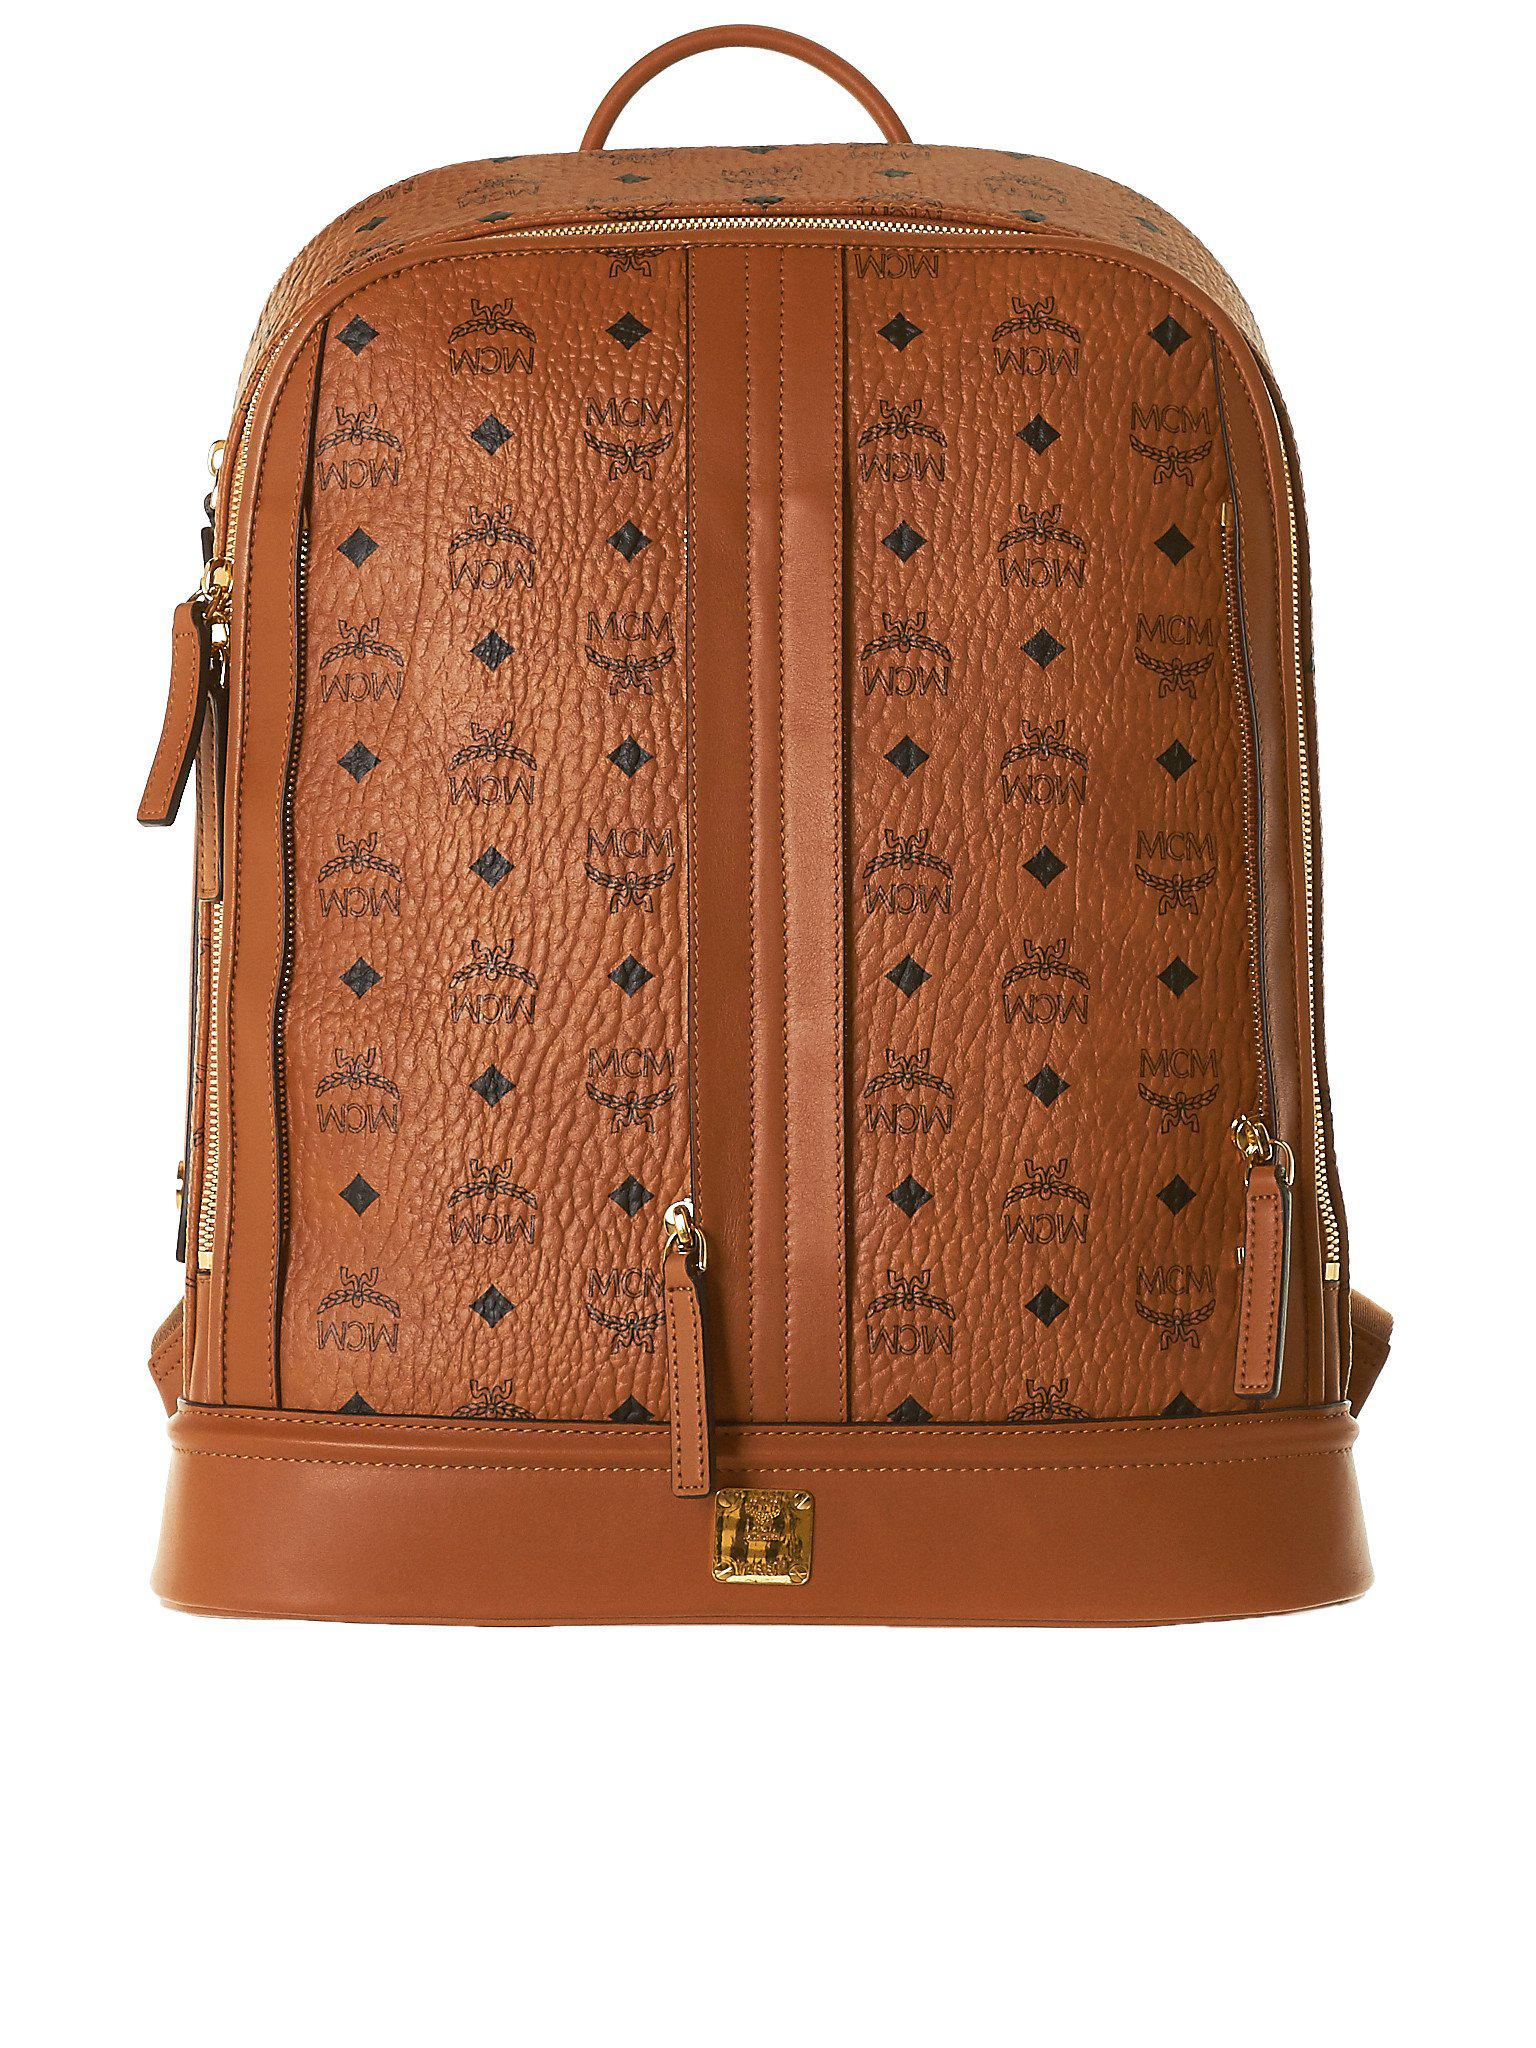 4fc274a0dab Lyst - Christopher Raeburn Mcm X Leather Backpack in Brown